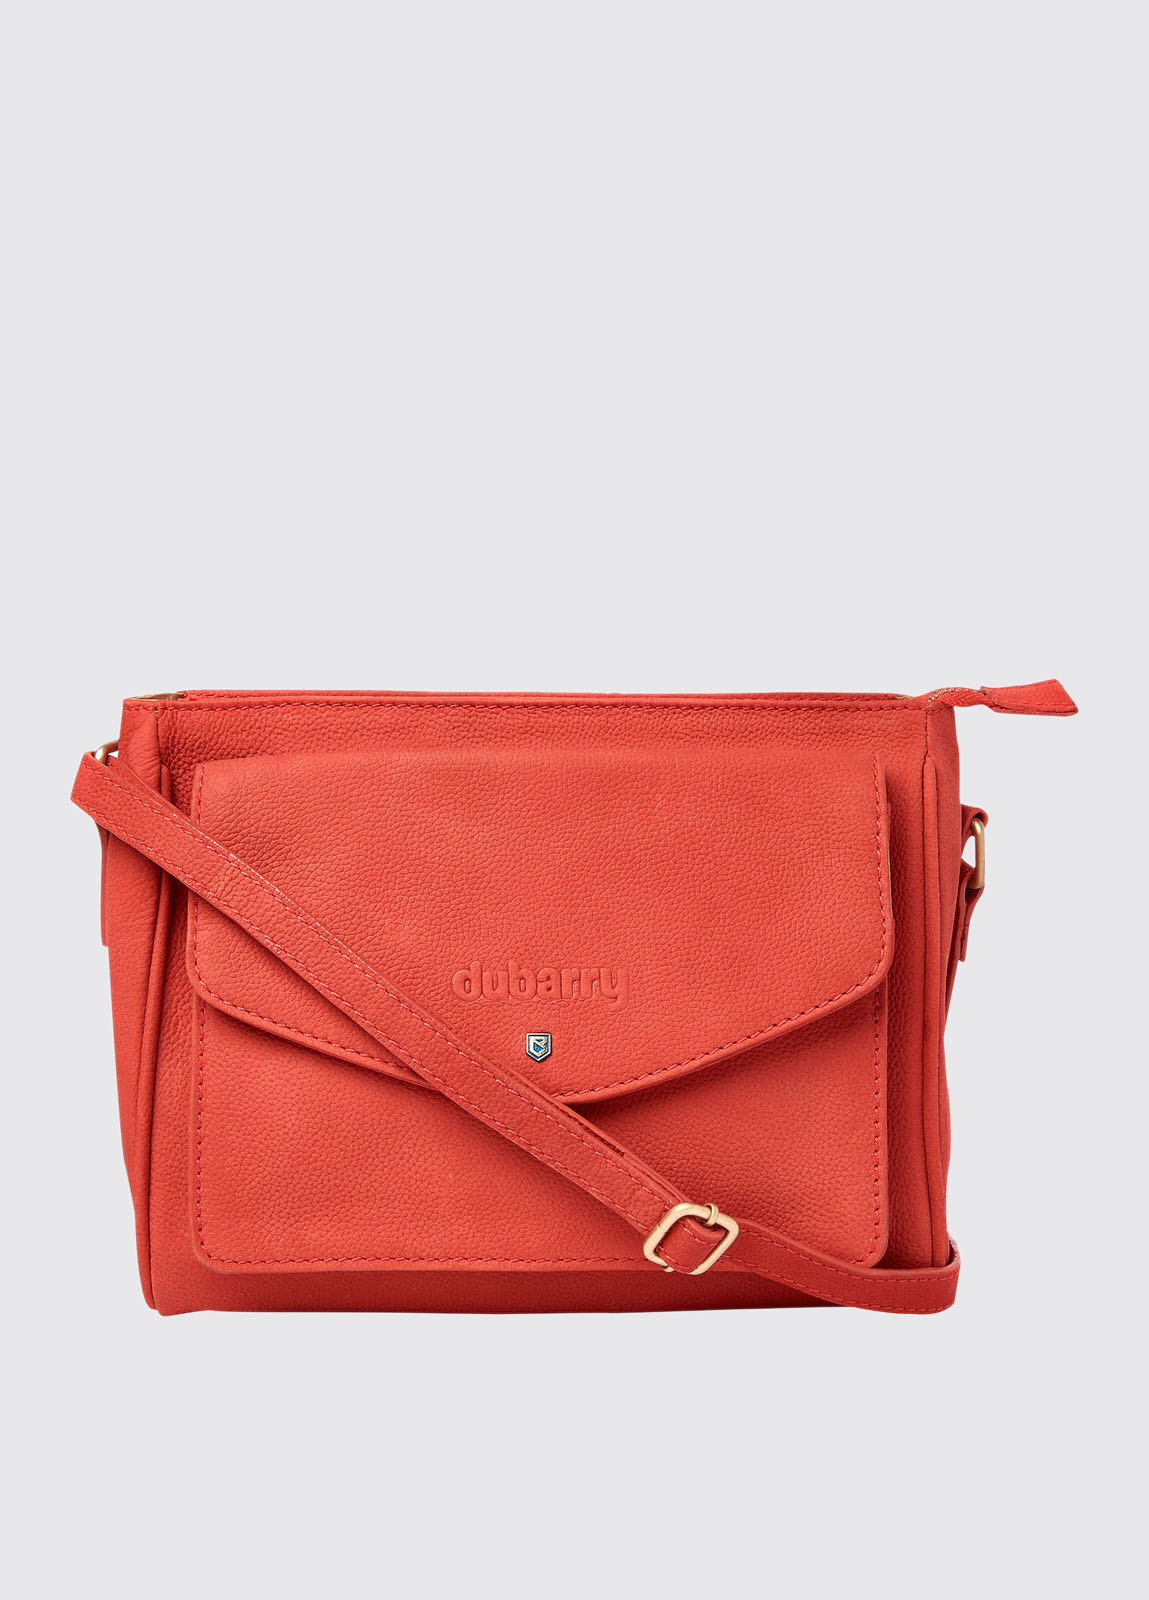 Garbally Cross Body Bag - Coral